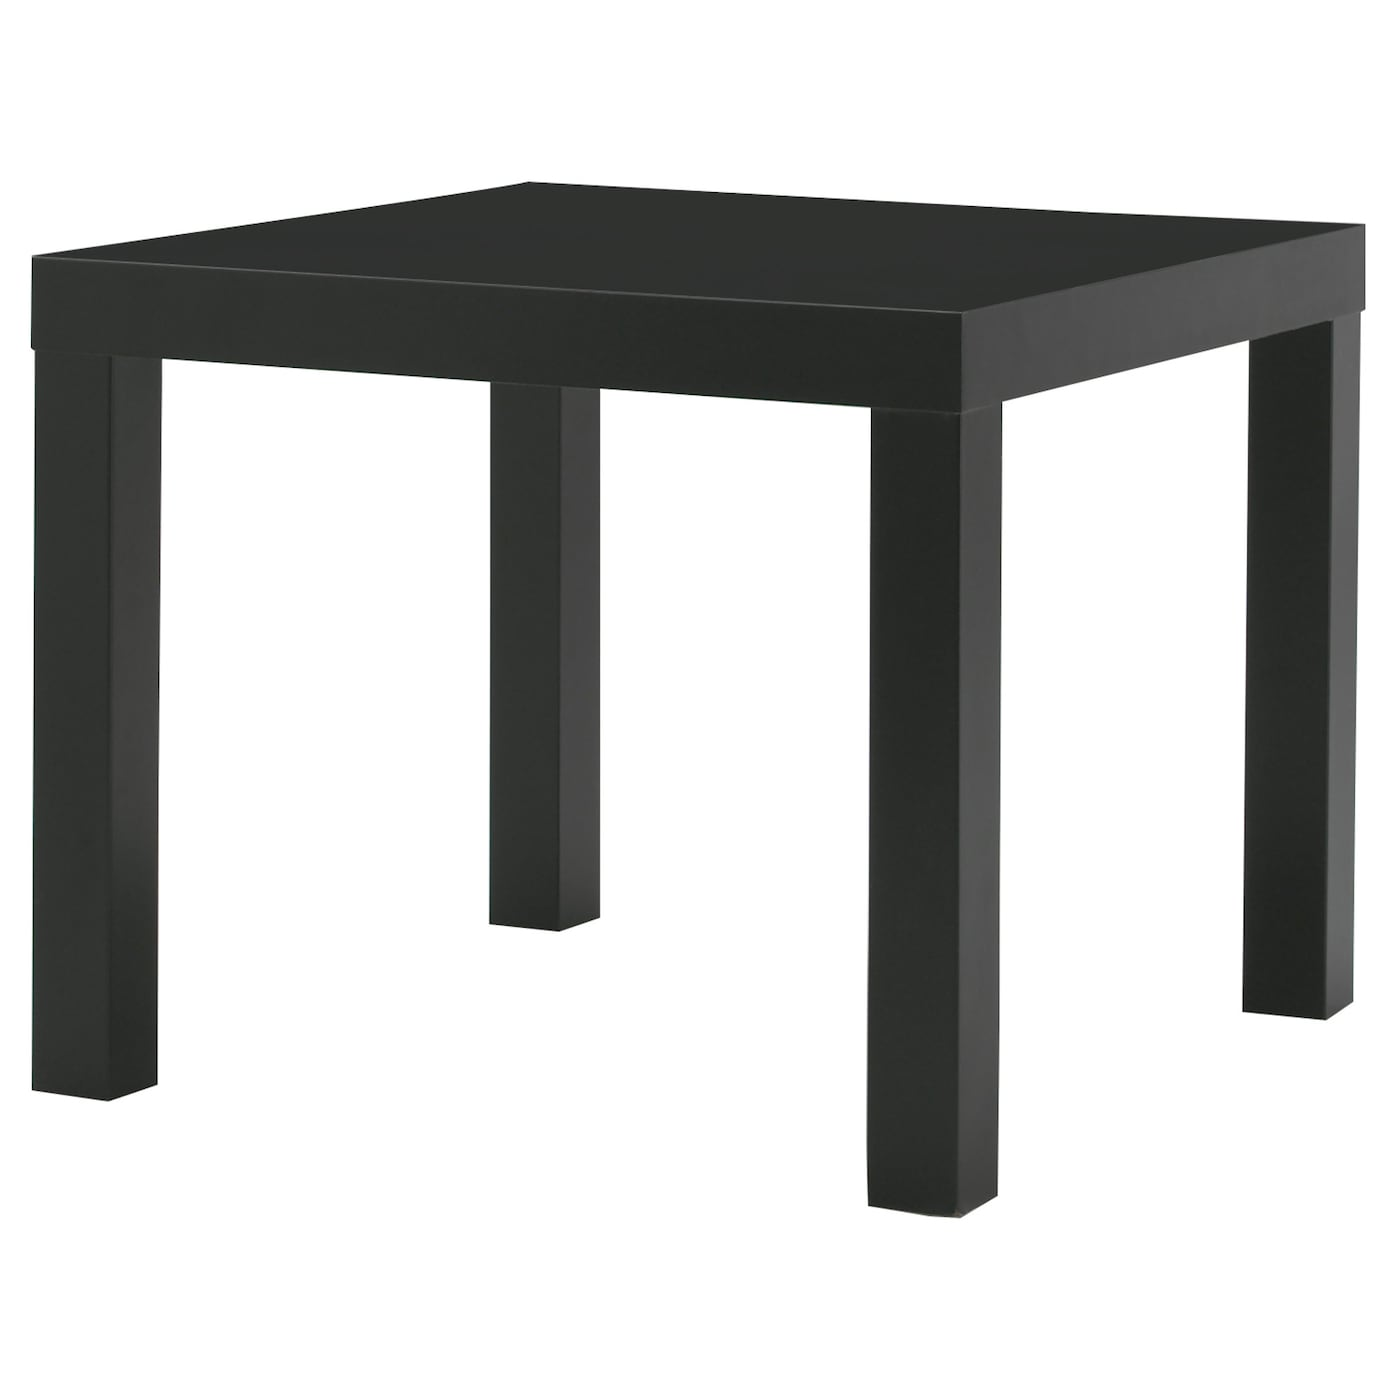 Lack Side Table Black 22x22 Ikea